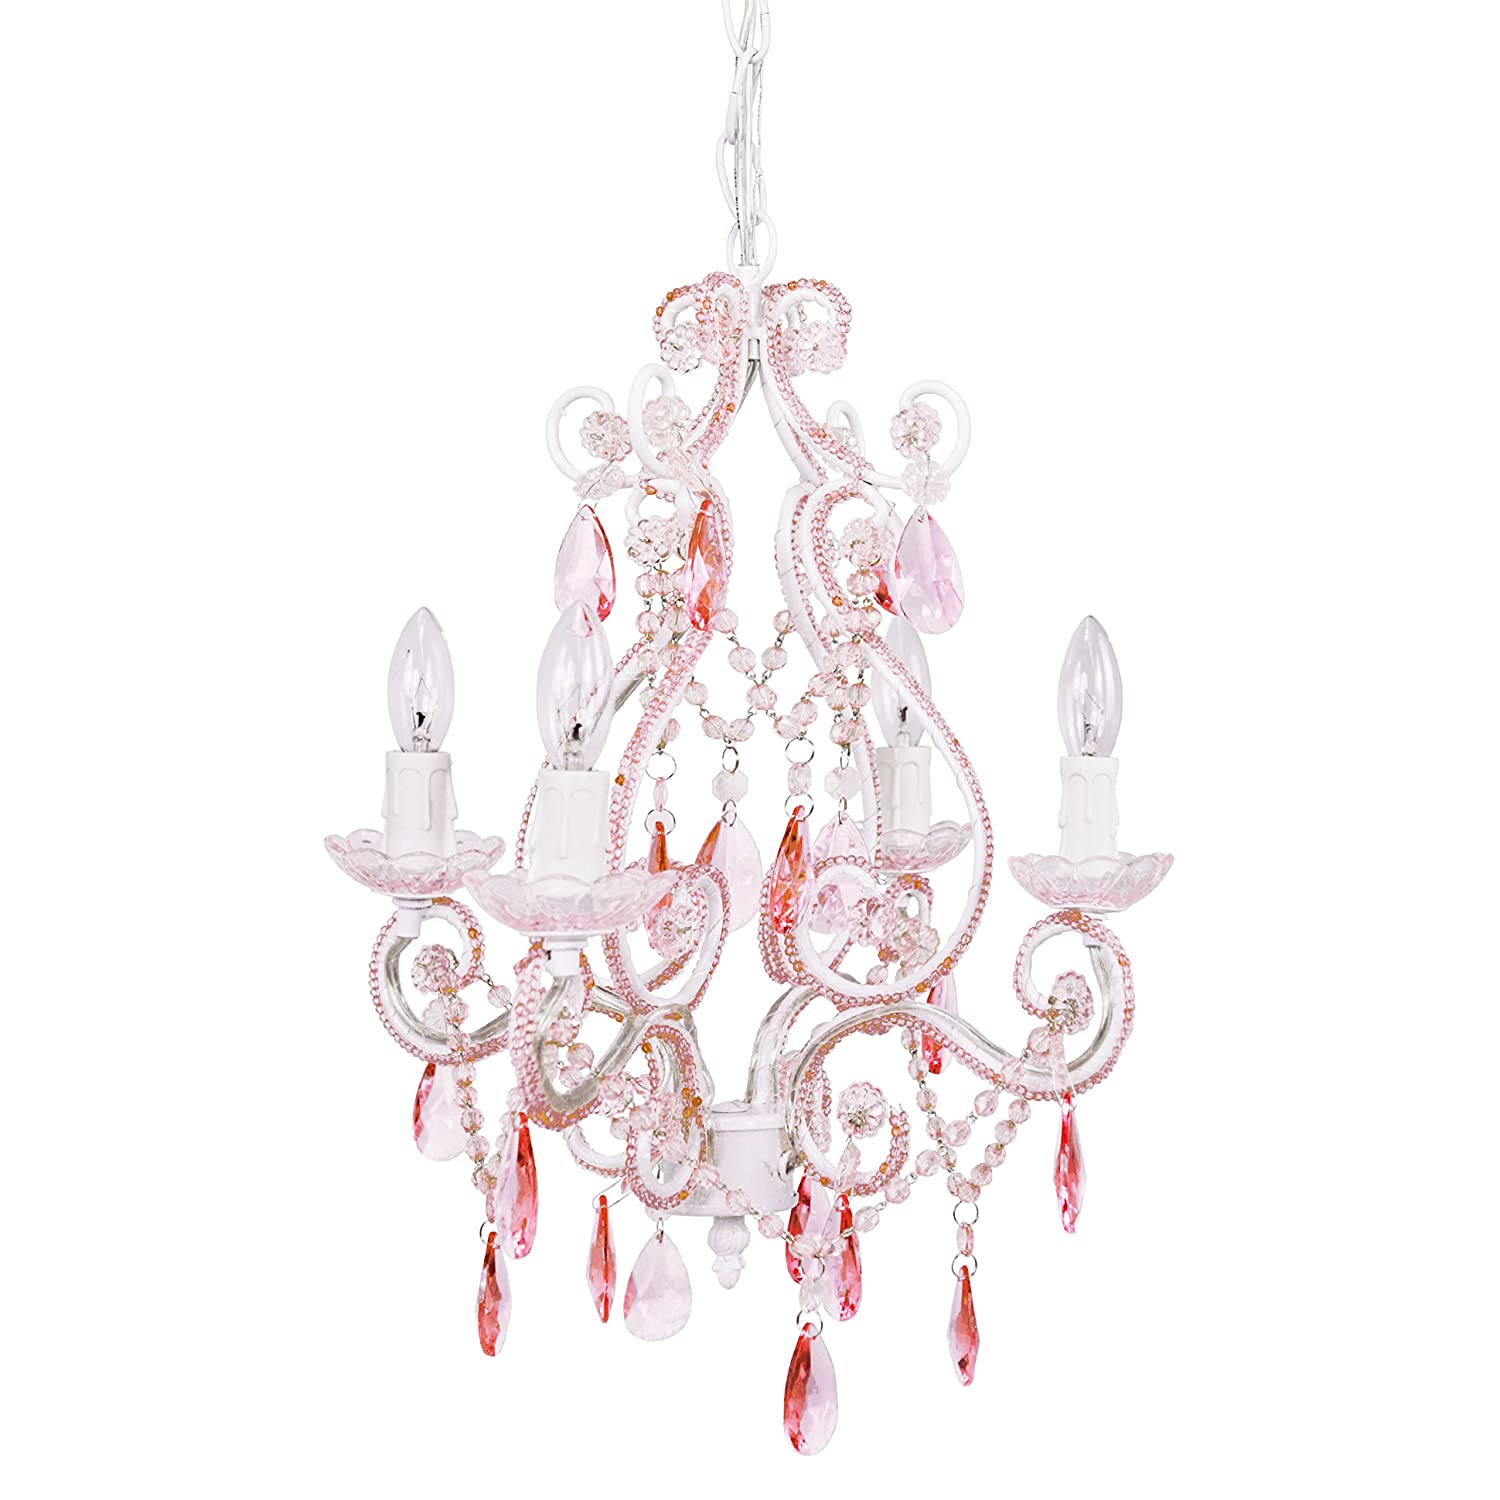 Top 10 Best Chandelier For Baby Girl Nursery (2020 Reviews & Buying Guide) 5